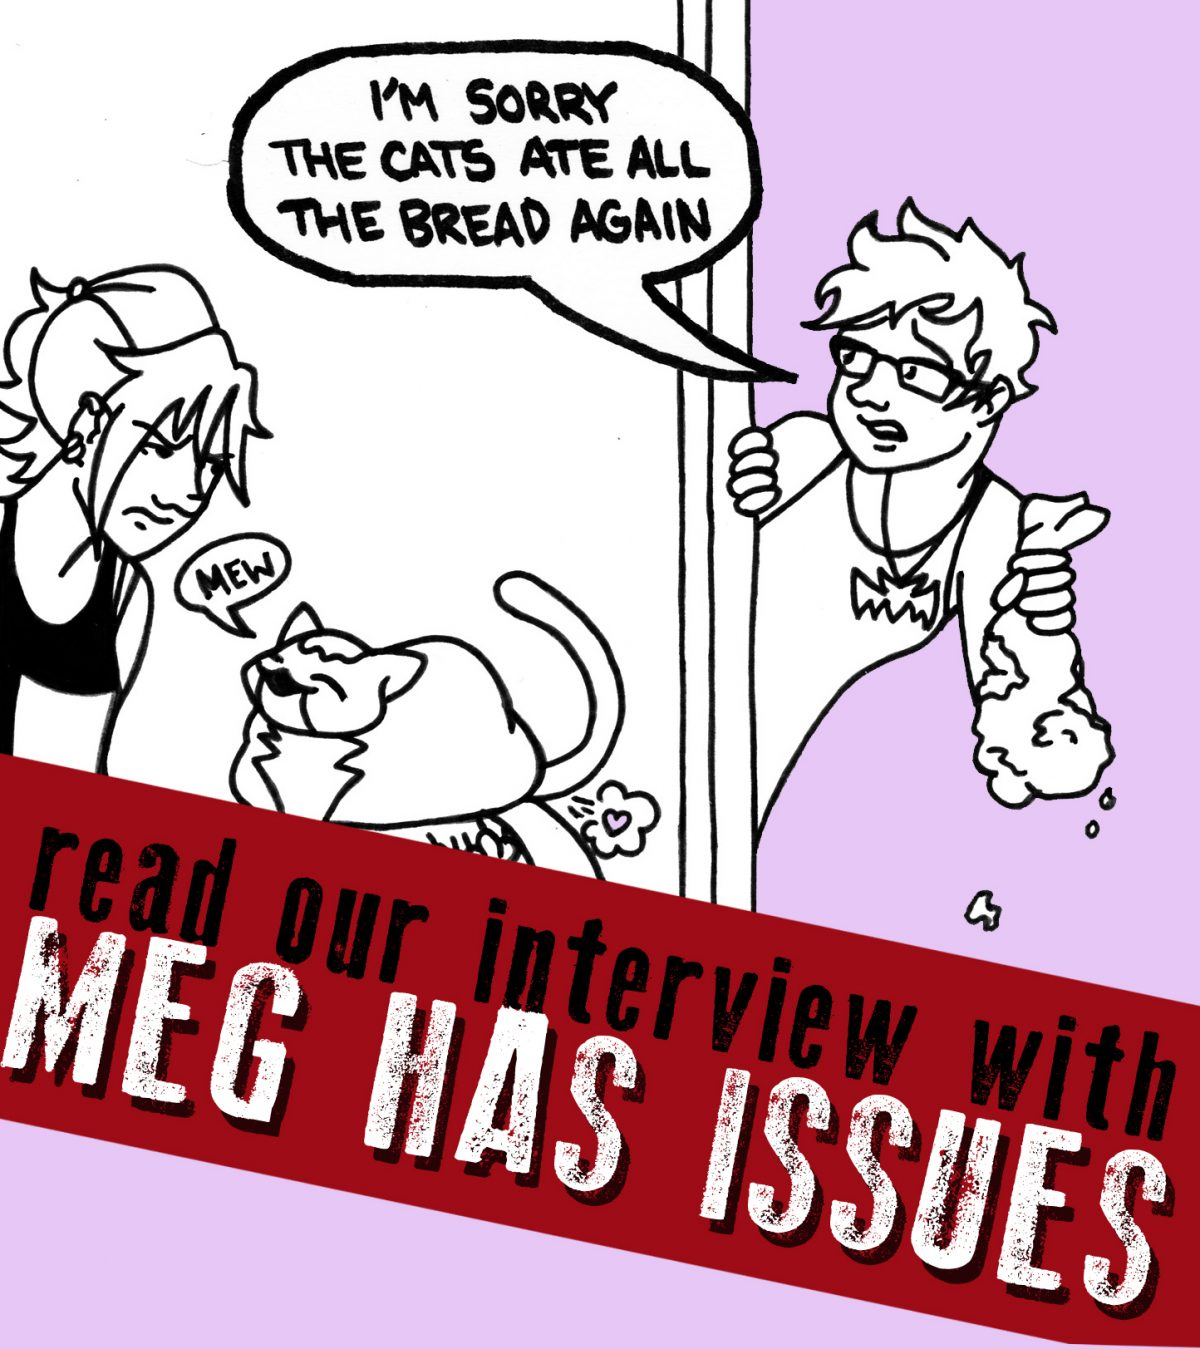 "SILVER SPROCKET Interview with Meg Has Issues    We're really into Meg's art and her cat obsession, but we're also really into her realness. Find out what she's been doing (and what's been bumming her out), what kind of asshole antics the cats in her life have been up to, and how comics have helped her relate to people and find her place in the world.    Interview by  Natalye  for  Silver Sprocket     What have you been doing  since we last talked to you ?   Mostly just working my ass off. I now work even more jobs—one of them in a comic shop, and one as an assistant to another artist, and I still work for myself making comics and other horrible things. I've been struggling a lot with feeling like I'm not good enough and not in the right place. So to combat that, I'm trying to fix the things I don't like about me and about the way the art business works down here (Atlanta). Hopefully by next year I'll be in a place that works better for me both literally and figuratively.   Your newest project is  dating through comics,  which is such a rad and unique idea! Can you explain it a bit more for us?   Now that it's been out there for awhile, I feel kinda stupid for starting the project. So, long story short, there was a relationship I had years ago that still kinda sticks in my mind as being as close to perfect as you can get. We both loved comics, and most of the time we spent together—the times that were happiest—were when we drew  jam comics  together. Everything was great… except for me. I was really unstable and messed it up. I've spent the time since then getting myself together, and even after all that, I still miss the feeling of having something that's such a big part of my life that I can share completely with someone else.  So yeah, the whole project has been kind of a weird attempt to get that feeling back or at least have fun while I'm dealing with the feelings from that stuff. I'm not even looking for a partner; for the most part, I just wanted to connect to people again, and that's something I struggle with unless it's through comics.  I put up the info online for what I'm looking for. It's basically that I thought it would be fun to draw a jam comic as a date, kinda like a pseudo romantic version of  James Kochalka 's  Conversation  series. I've gotten maybe 20 submissions, and out of those, only maybe 3 or 4 have been other cartoonists.  I know I should be responding more and finishing these, but a lot of the situations that have come out of these are not comfortable for me. I feel like I made a mistake leaving myself so open and being so up front about everything, but I don't like being fake. It's led to a lot of problems with people crossing boundaries or getting aggressive. I've received more emails of people calling me an attention whore and or a bitch than I have submissions. I've had people think that if I respond, it's an obligation that I start an exclusive relationship with them.  I don't know if I'm going to continue or if I should just take it down or if it'll ever come to anything. Sorry to be such a downer. It sounds like a fun project and I think it would be with the right people. I just don't know if or when that's ever going to happen.   [Editor's Note: Anyone being a jerk here is a way overly entitled shitbag that needs to quit ruining Nice Things for the rest of us. If you can't learn some basic human decency, please fuck off forever.]    What is your dream date?   This is actually a hard one for me. I don't really go on dates very often. I'd like to say something cool like ""doing something neither of us has done before"" or ""having an adventure."" Honestly, I'm more of the ""let's grab coffee and draw or work on a project together"" type. I think the last date I went on that I'd call a ""dream date"" was just me bringing over cookies and milk and we snuggled on the couch watching cartoons.   If you had to choose one artistic piece of output of yours (comic or otherwise) that would be representative of who you are to show someone who is not familiar with your work, what would it be?   Uhh… that's another tough one. Honestly, the piece of work that I love the most and put the most of myself into is  Open In Case Of Emergency , but unless I know it's something that the person I'm suggesting it to can handle, I don't recommend it. It can be a bit of an intense read. There's a reason why I've only printed bits and pieces of the full book so far. It's still a work in progress and it's nothing but what I feel and what I struggle with.  As for what actually seems to represent me as an artist… usually people just point at me and go ""You're the cat lady, right?""   You've said that your life ""revolves around comics."" What makes you excited about comics / making art in general? How do your life and your comics inform one other?   I've always had trouble making friends and relating to other people. I never really fit in completely. I could fake it pretty well, but I never really felt like I was wanted. Books helped me escape that. I've also always had problems with not feeling good enough. There was a lot of pressure on me to be good at sports or to get good grades and I just wasn't.  The only thing I was good at or received any real reaction from was art. So when I discovered comics, something just clicked. It was something I finally felt that I was good at that allowed me to communicate with other people without getting misunderstood. I feel like comics allow you to interact with people in a way that no other medium besides maybe music really can. It's a full connection that you can take your time with, to put everything you are out there with, and if you're lucky, maybe someone else will feel that connection too.  I guess the main way my life has become inseparable from my comics is that I find it really hard to communicate fully without them anymore, especially when it comes to dealing with my symptoms. I can explain to someone what's going on when I have a swing or flashbacks or a panic attack, but they may not be in the right place to understand or may get distracted by the physical things going on. If I show them a comic about what I'm going through, it seems to help them understand more.   In our last interview, you talked about how much you love cats, and of course the cats in   Cat Therapy   say really lovely and encouraging things… but your comic in  AYW #4 says the cats are assholes. So how do you REALLY feel about cats?   I love cats. Mostly I love my cat. She's the best. My old roommates' cats, not so much. They really were assholes—one of the MANY reasons I now live alone and will continue to do so for as long as I possibly can.   What is the most asshole thing your cat (or the cats of your roommates) has/have ever done?   The worst thing my cat has ever done is actually pretty hilarious. She is extremely attached to me and gets upset if I don't spend enough time with her. So I was out of town for awhile and had just gotten back. I fell asleep like I normally do, on my stomach. Dot somehow managed to get in my room and throw up exactly in the cup of my feet so that I could not get out of bed or move without getting cat vomit all over my bed. I was actually pretty impressed at that.  My old roommates' cats just broke everything… or at least I think they did. I'm starting to have my doubts. My roommates used to blame everything of mine that was broken (on) the cats. I know they constantly ate my bread and chewed on my power cables, but I doubt some of the other stuff.   Off the top of your head, who are some artists whose work you love that fans of your comics should check out?   If I listed out everyone I wanted to, this interview would be five feet long. Since I work in a comic shop now, I get my hands on a lot of cool stuff. If I have to keep it to a few notable picks (aside from all my buddies at Silver Sprocket who I recommend everyday), I'd say  Sam Spina ,  Andy Hirsch ,  Sophie Campbell , and  Isabella Rotman .  Sam is literally the nicest guy in comics. He draws some amazing work. Some people might have picked up some of the things he's been doing for cartoon-related titles, but his solo work is amazing. If you don't laugh after reading   Sheriff  , something is wrong with you.  Andy draws some amazing books. The thing that makes me a huge fan of his is his crazy detailed mini comics. I've never seen anyone play with format the way he does to create beautiful functional comics.  Sophie Campbell is my favorite artist, hands down. I picked up her work when I was in college and haven't been able to put it down since. She draws the most amazing people. I am completely in love with the way she draws women.  Isabella Rotman is ridiculously cool. She draws funny and informative comics about sex and consent. They're gorgeous too. Please go check her out.   What question do you like to be asked / wish you were asked but never were… and what's the answer?   Um… Do you want to be friends and watch cartoons? Hell Yes!   What are you waiting for?  Go check out Meg's website , and maybe send a (non-asshole, non-creepy date comic), but don't forget to also grab a copy (or two) of   As You Were: Living Situations  ."